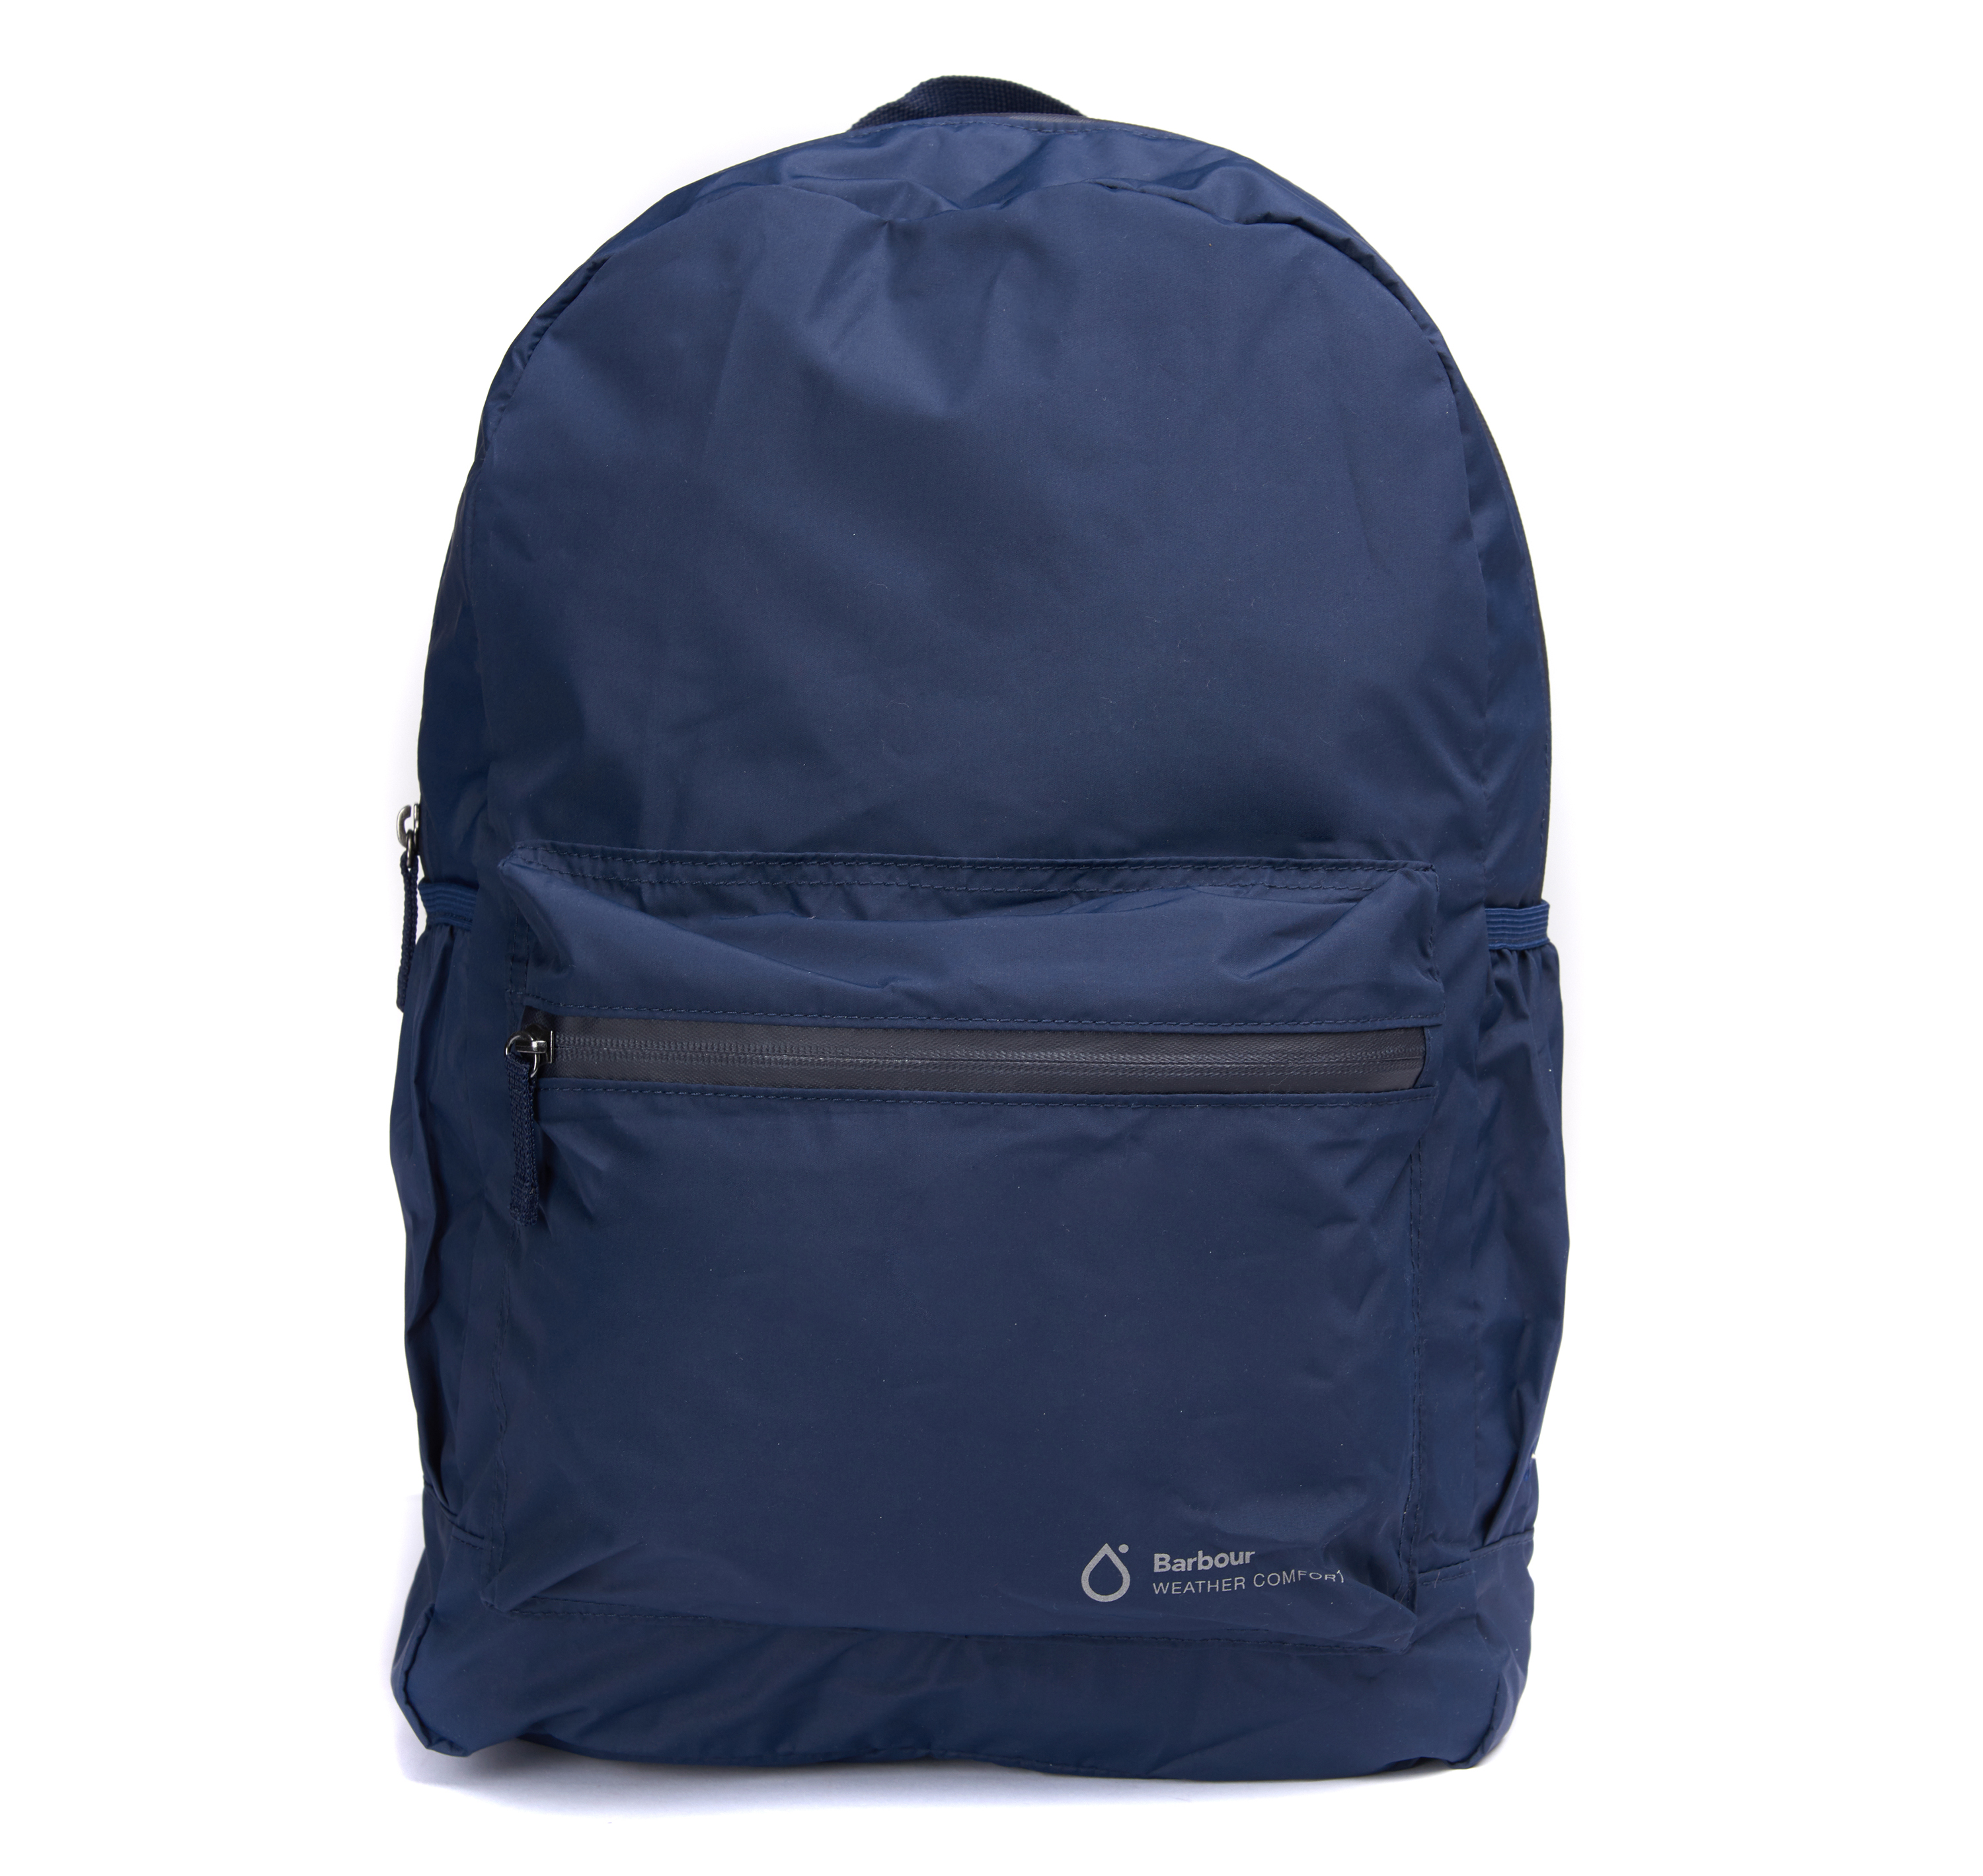 Barbour Barbour Weather Comfort Backpack Navy Barbour Weather Comfort